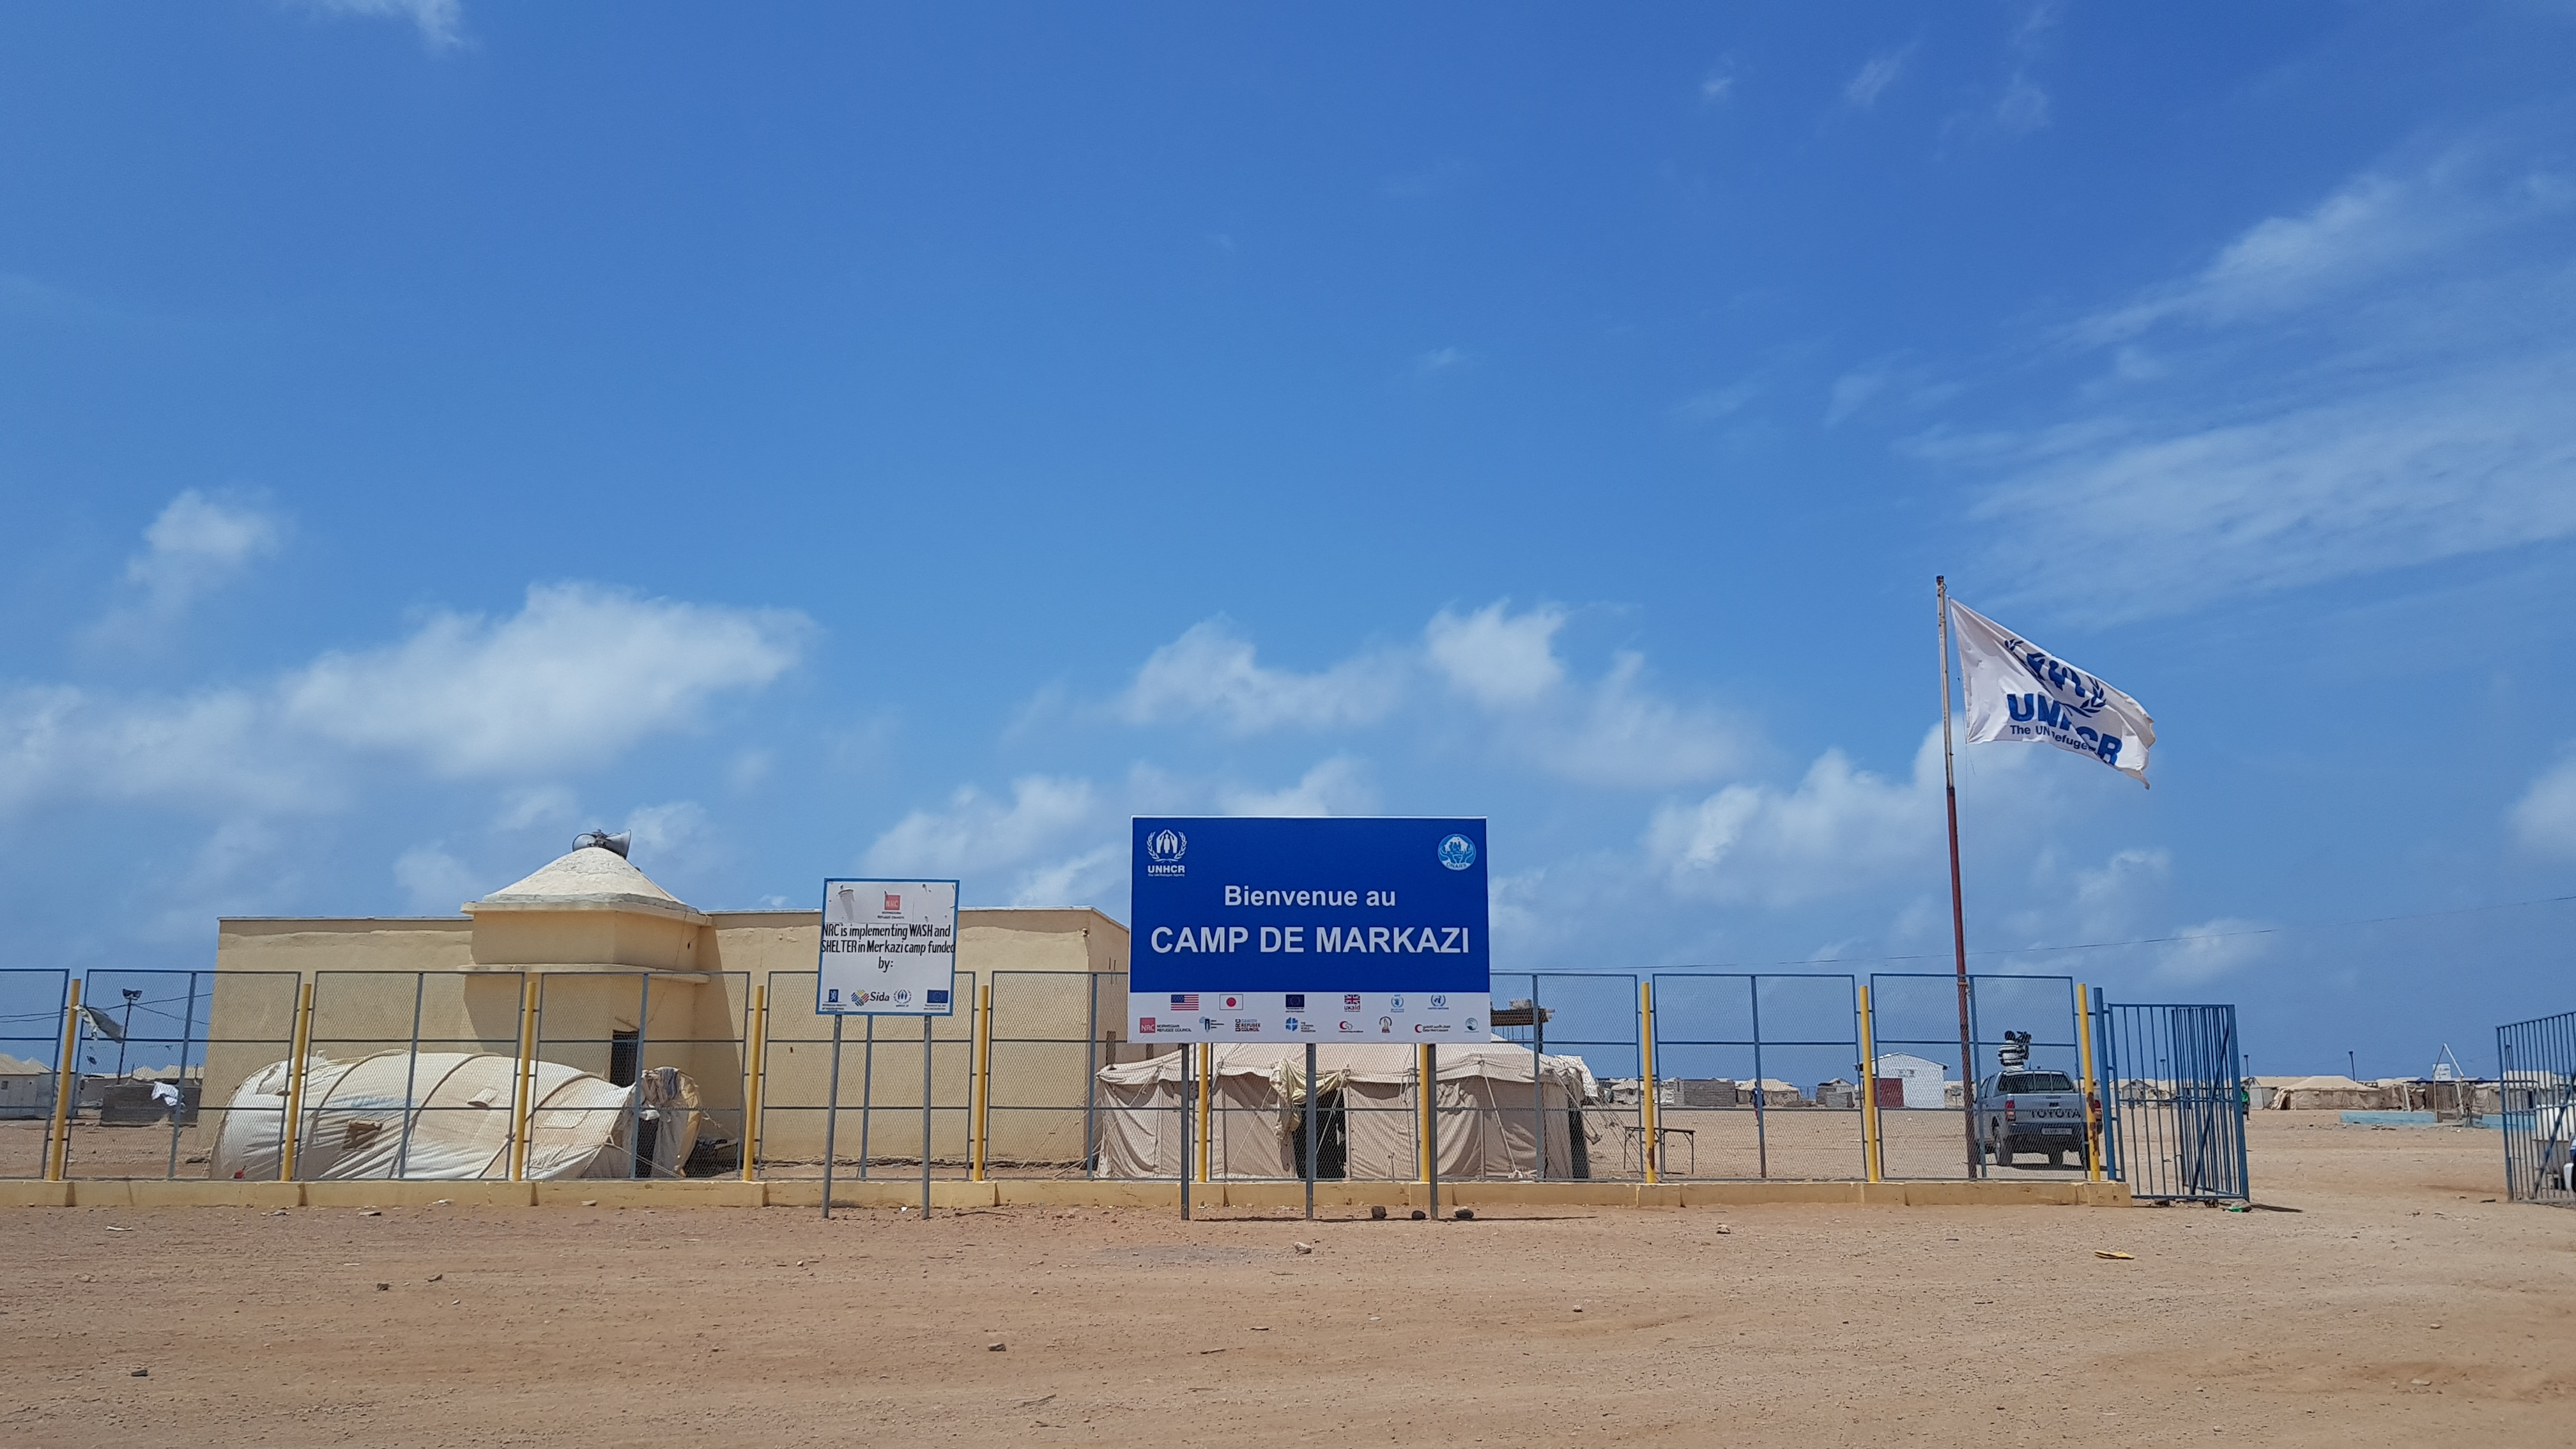 Markazi Refugee Camp located in Obock, Djibouti which is the home of around 1,500 Yemenese refugees